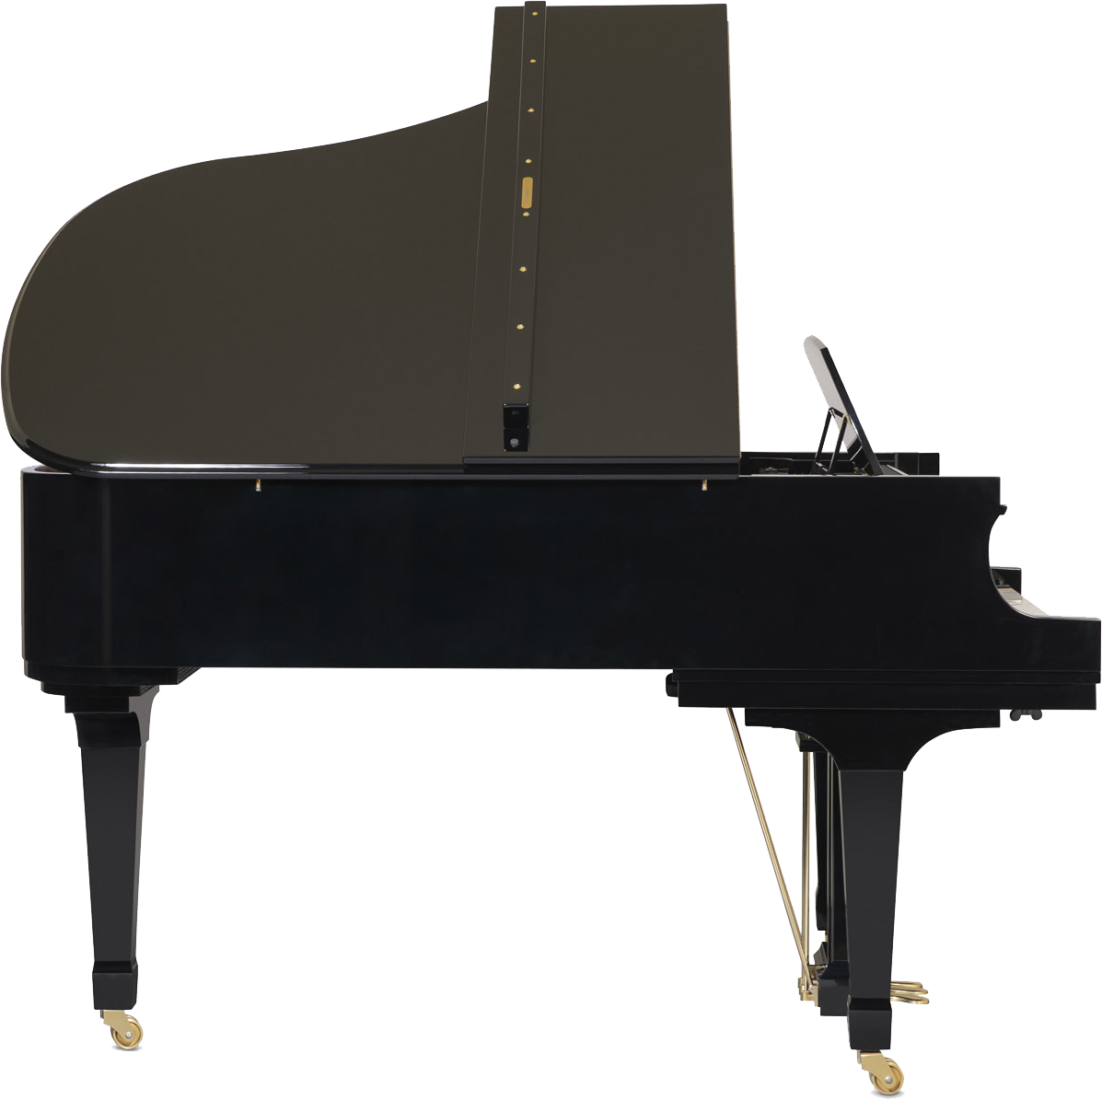 piano-cola-boston-gp178-profesional-nuevo-edicion-especial-rainbow-performance-edition-rojo-lateral